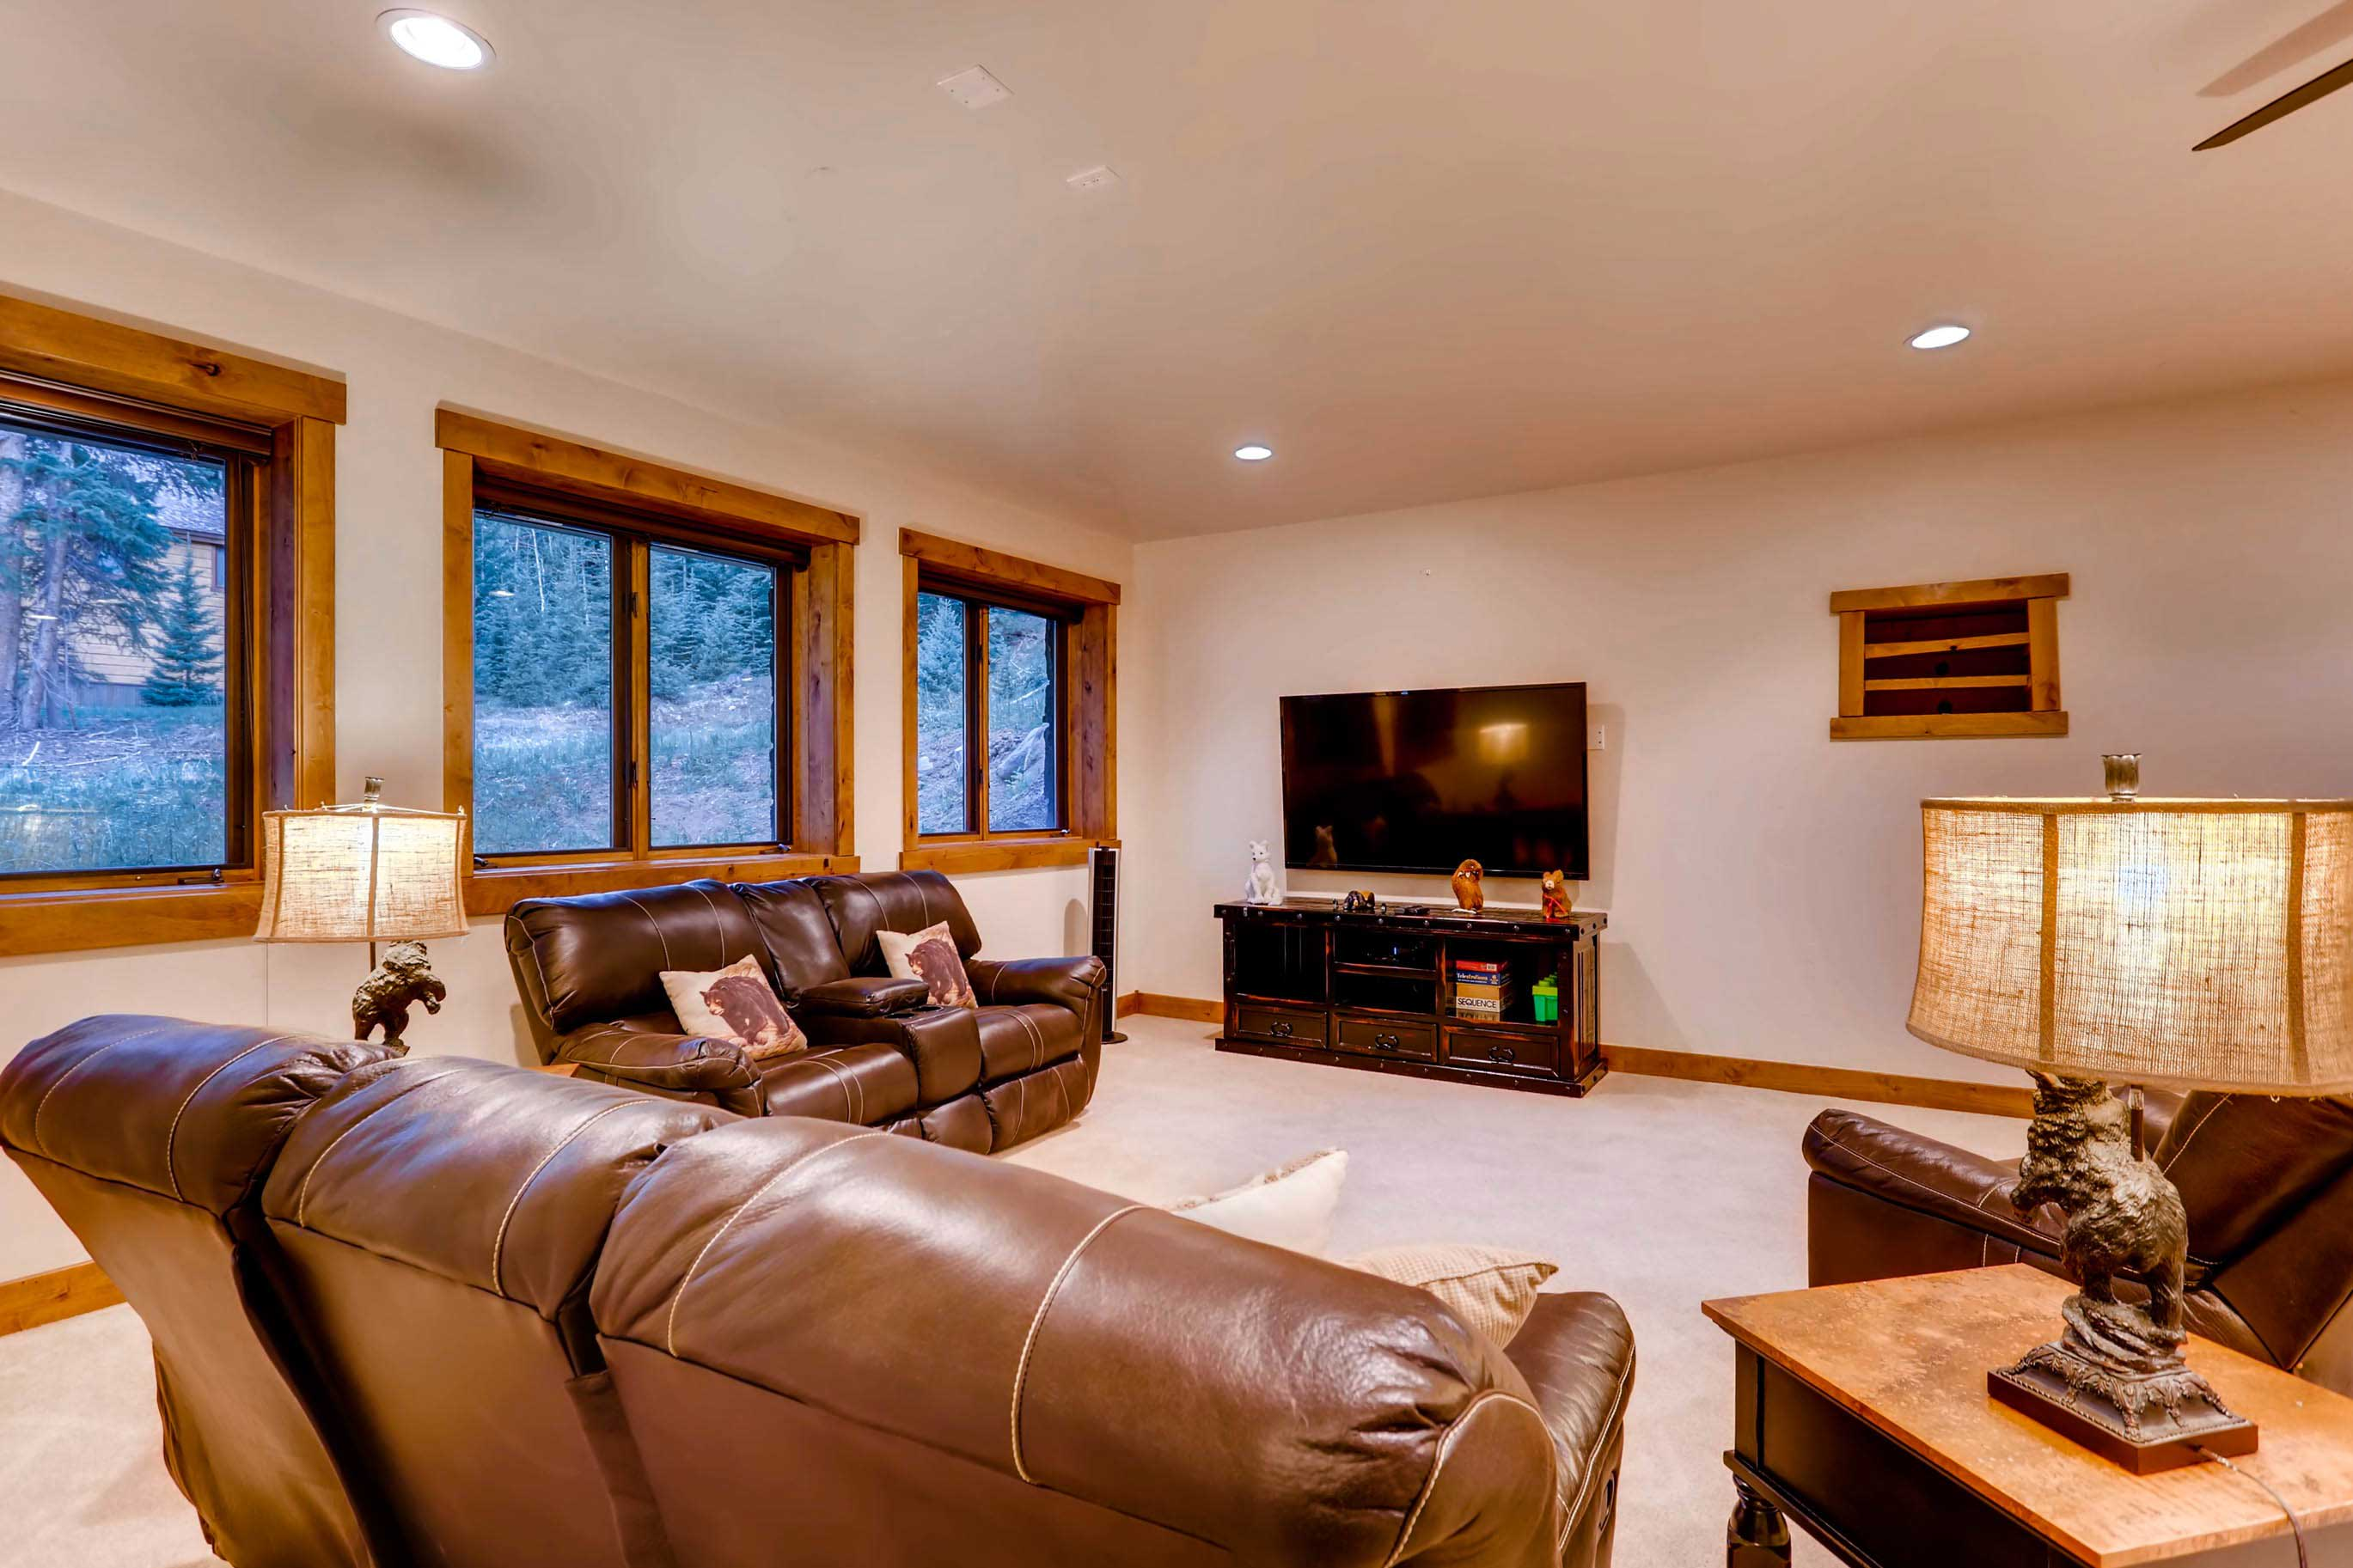 The basement offers another cozy living area.